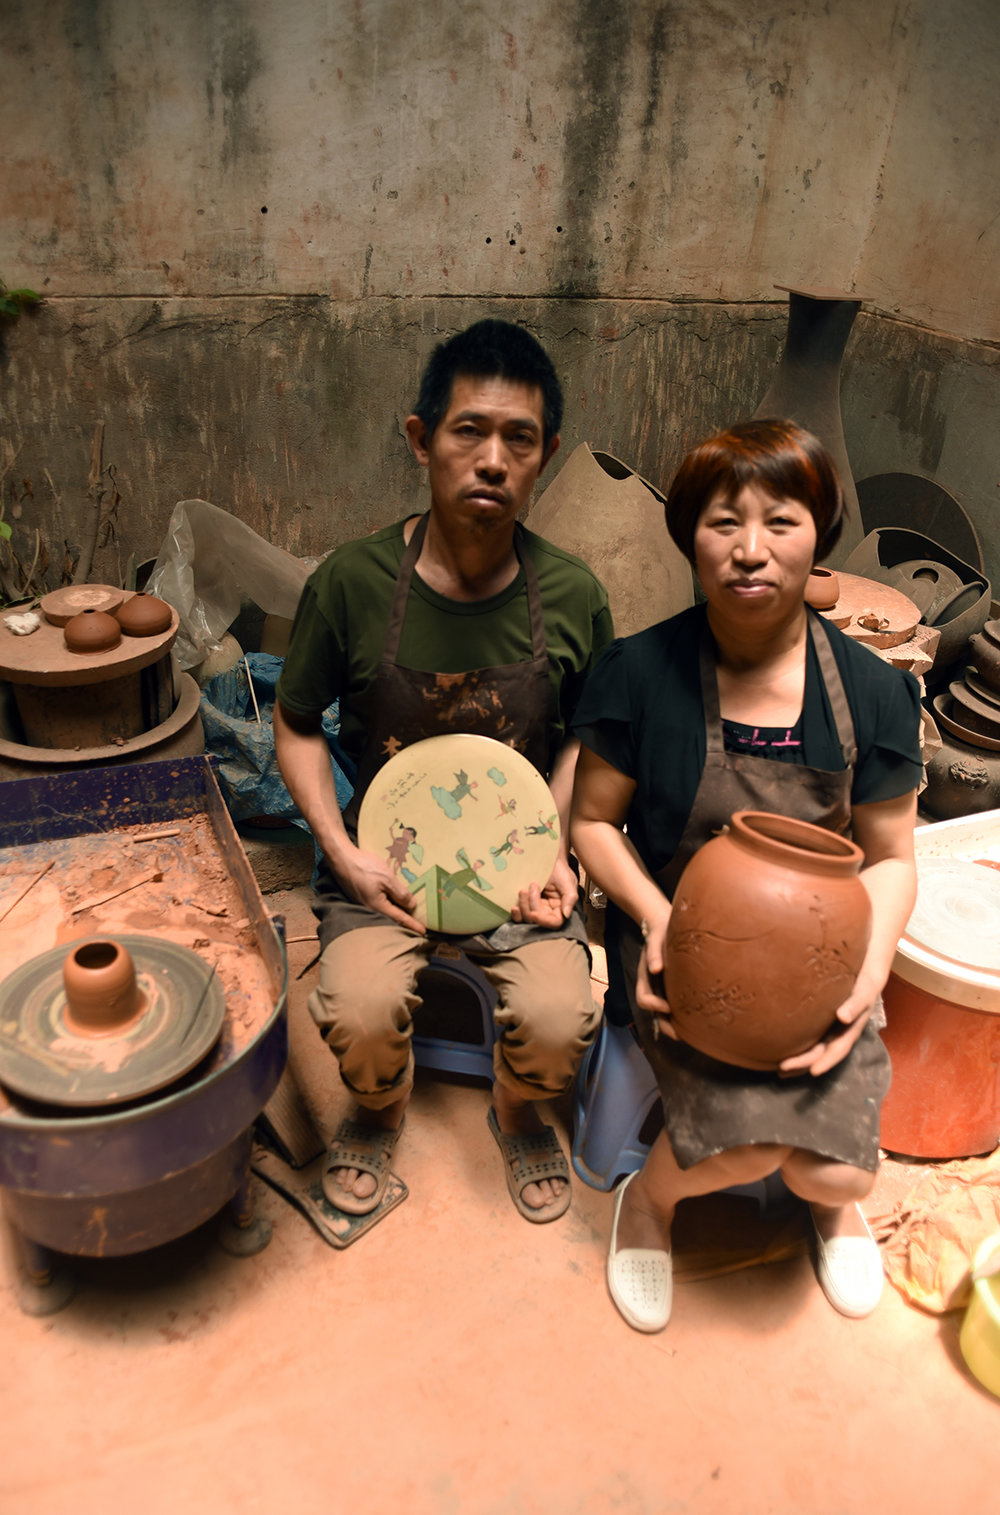 Mu Zhong and his wife Qing Fang, Inheritors of Purple Pottery Intangible Cultural Heritage, Jianshui, Yunnan Province.